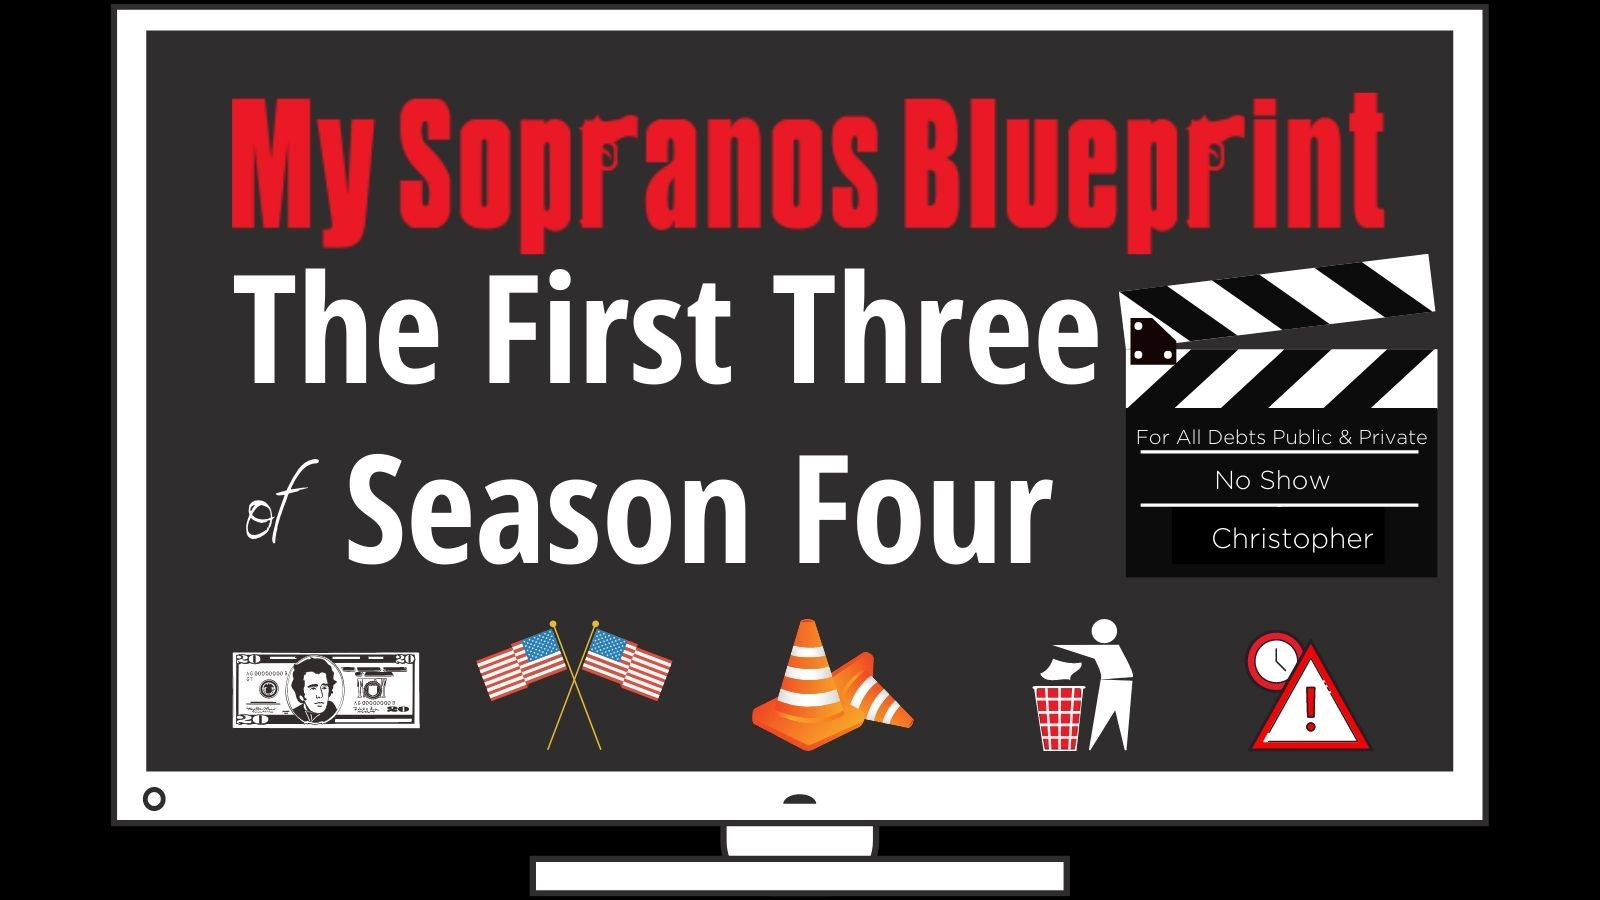 The first three episodes of the sopranos season four